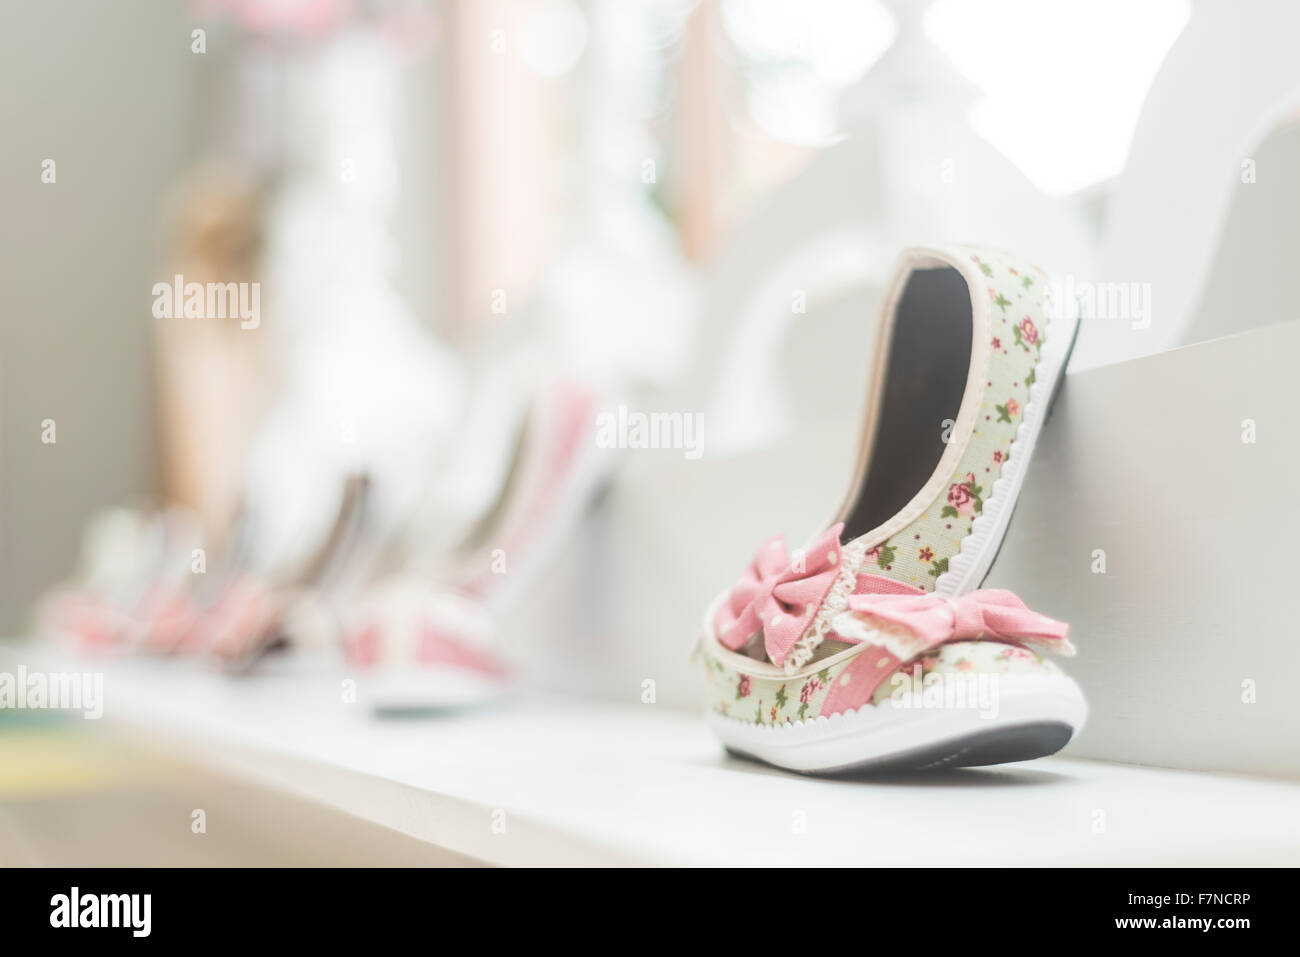 young girl shoes in children footwear shop display - Stock Image